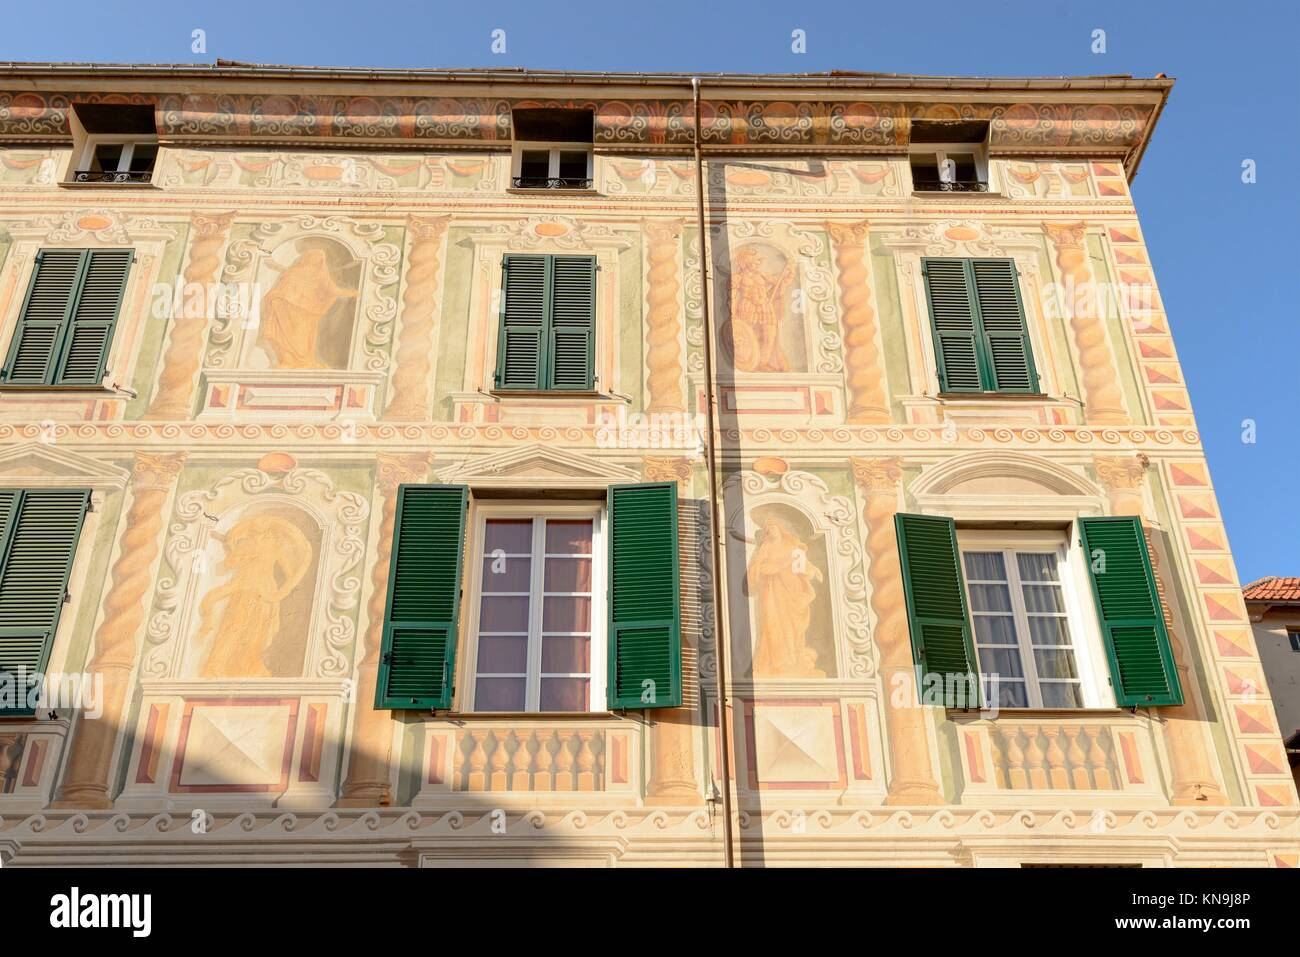 detail of highly decorated painted facade at Campo Ligure village, Ligure inland, Italy. - Stock Image